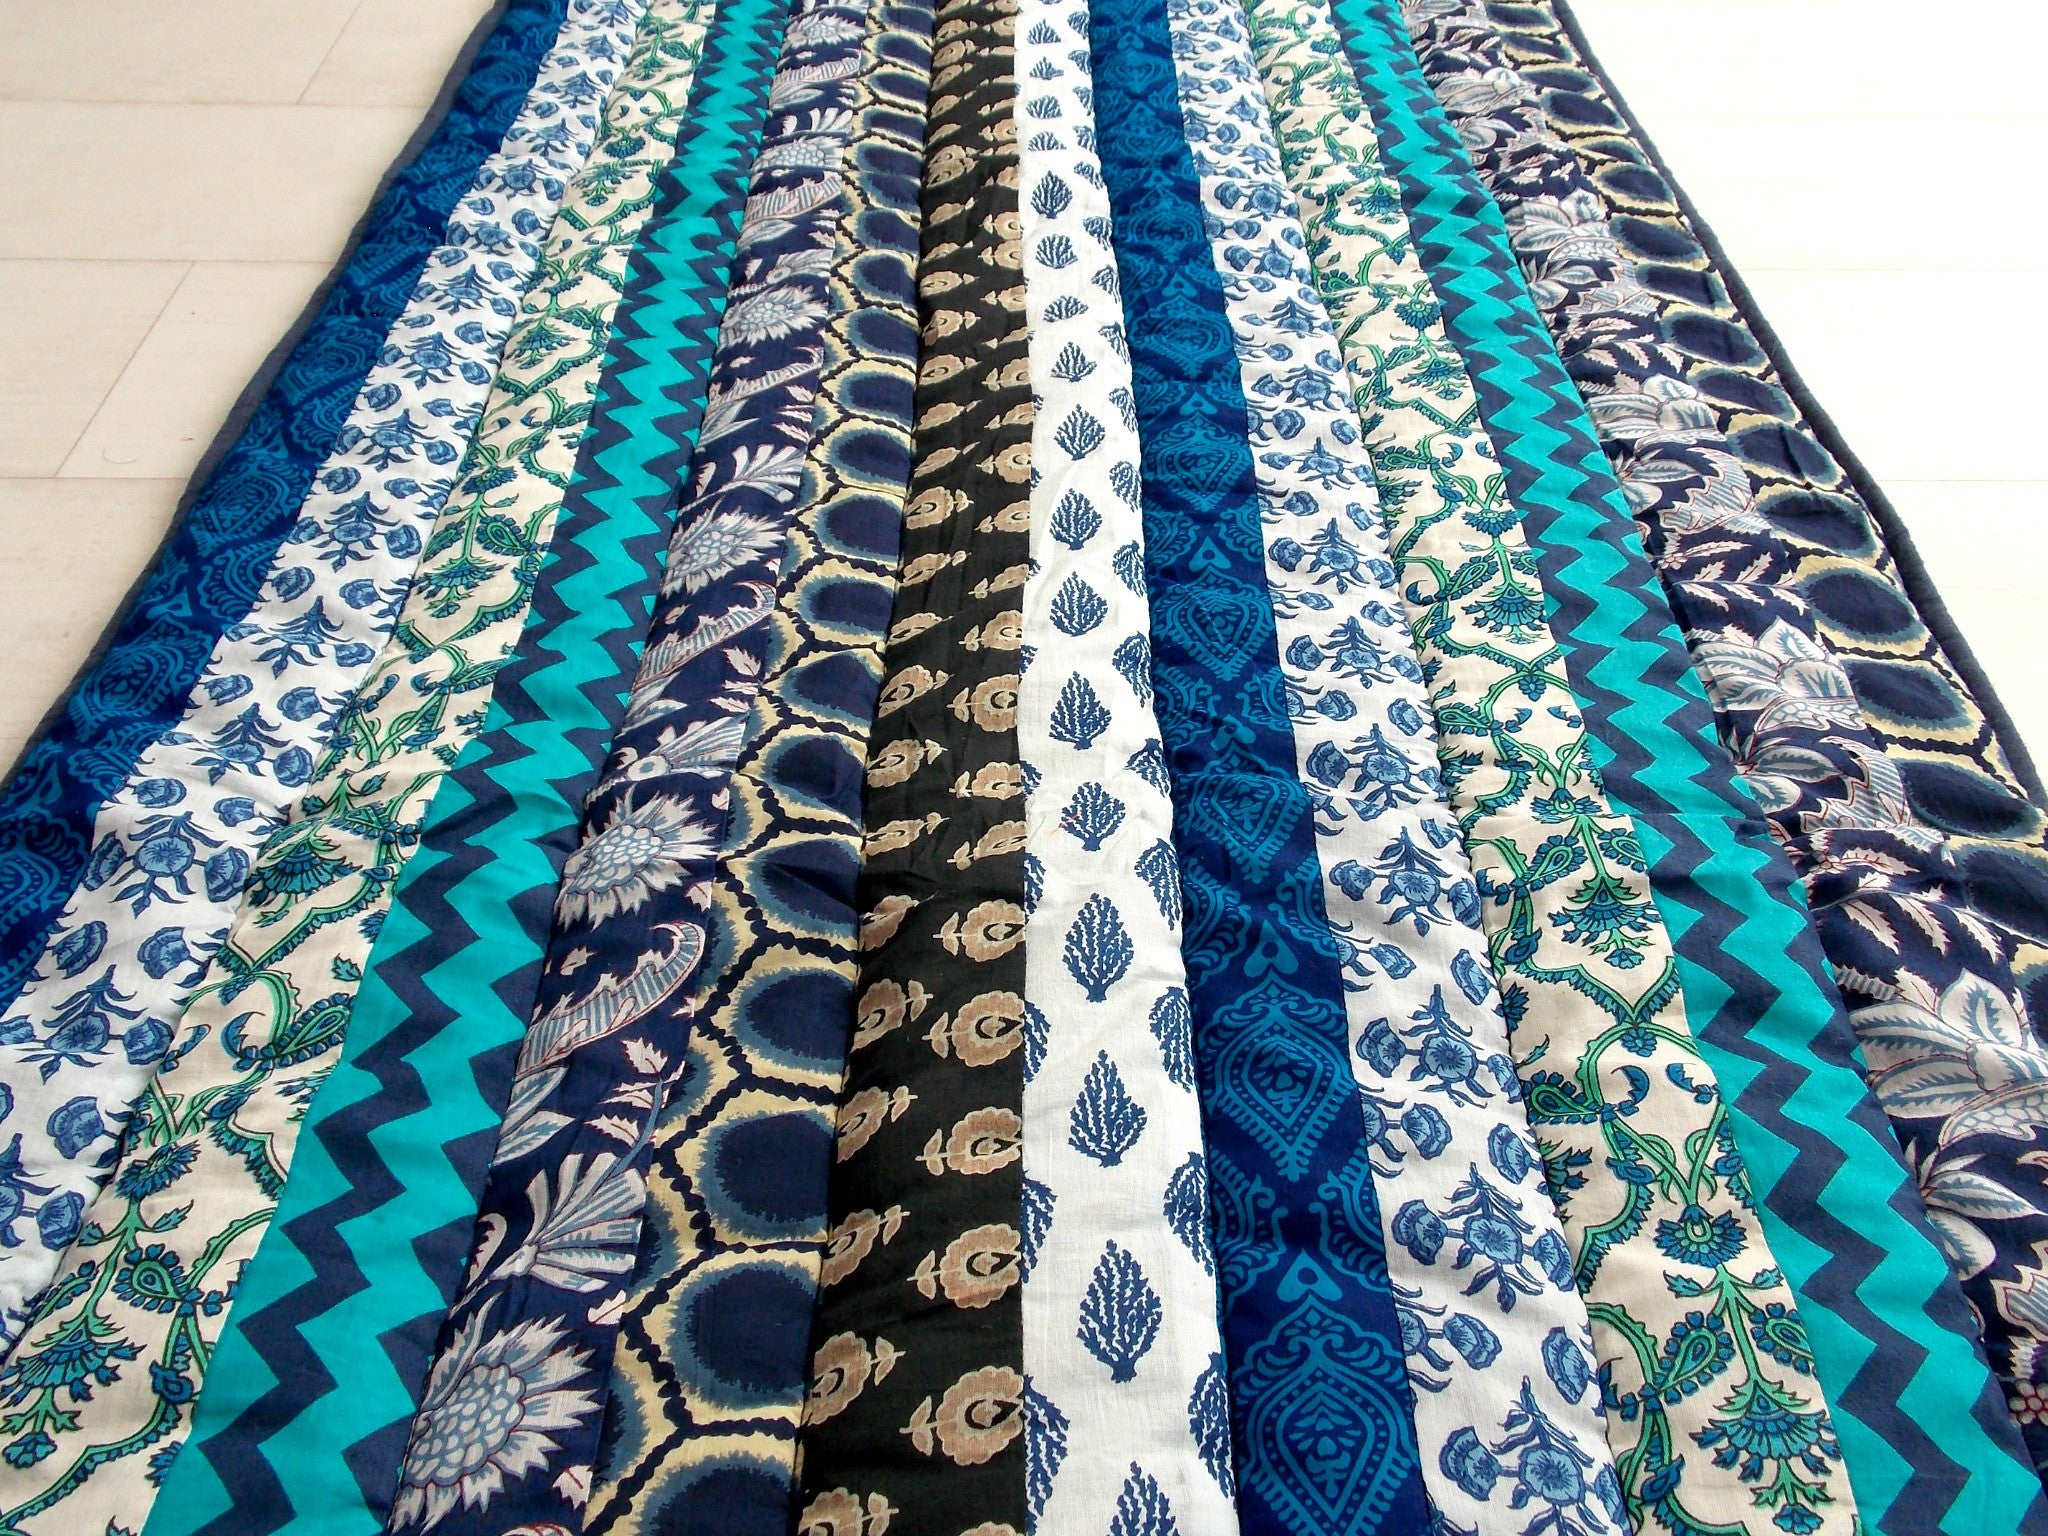 Teal Medley Yoga Mat - Patchwork Stripes - An Indian Summer